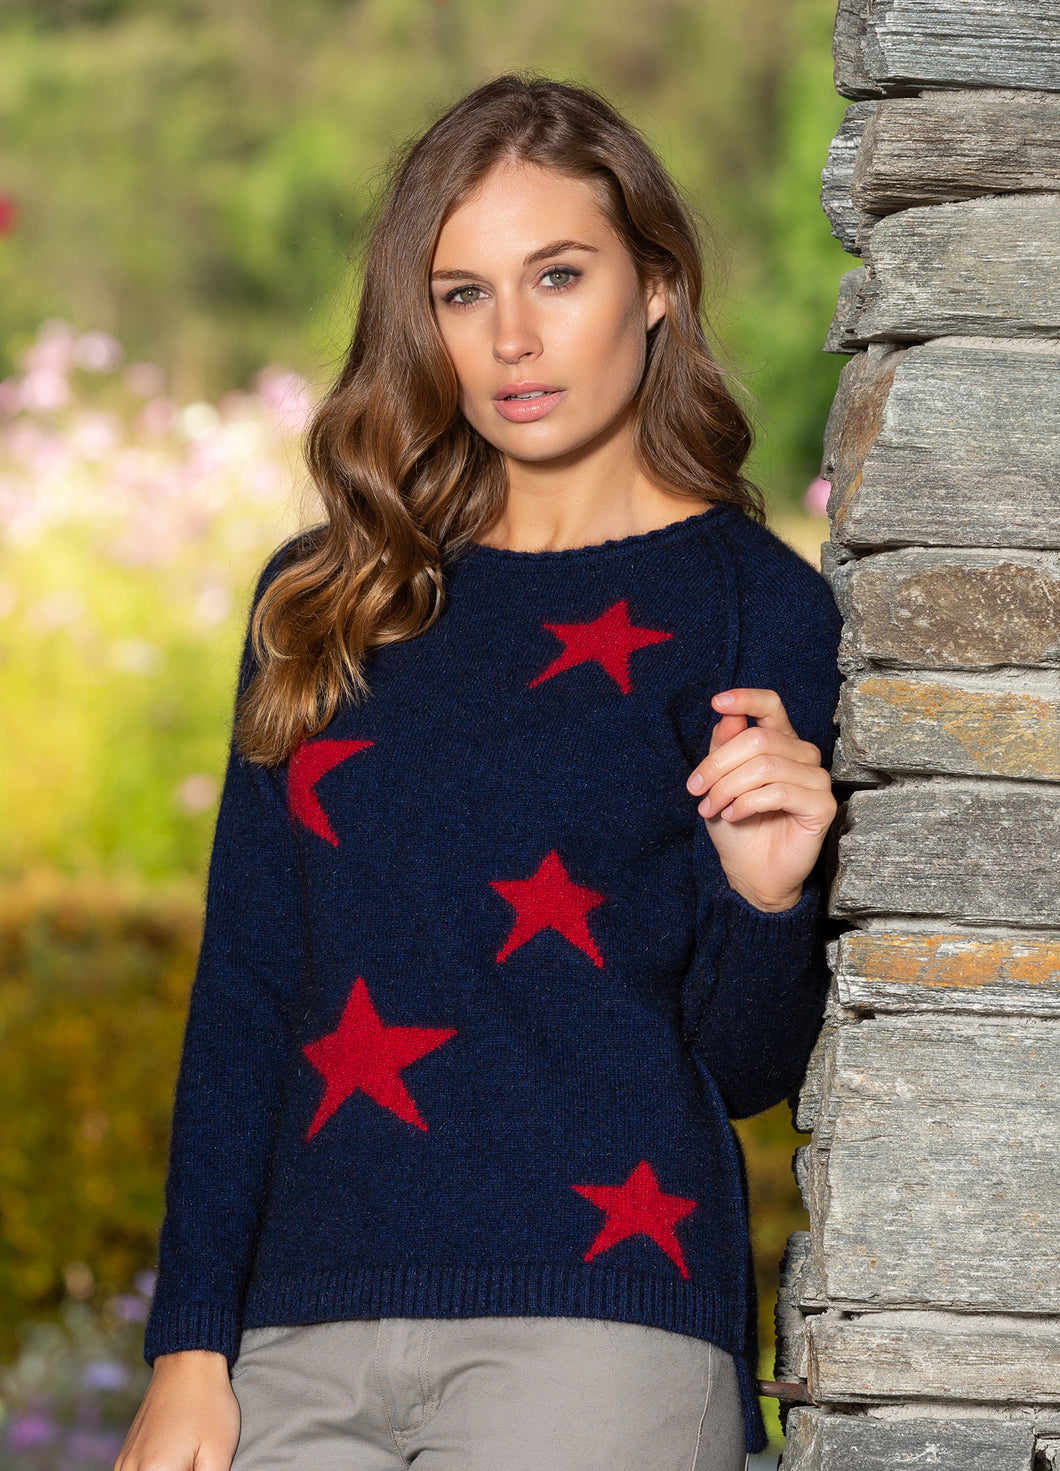 Wool/Possum Southern Cross Jumper